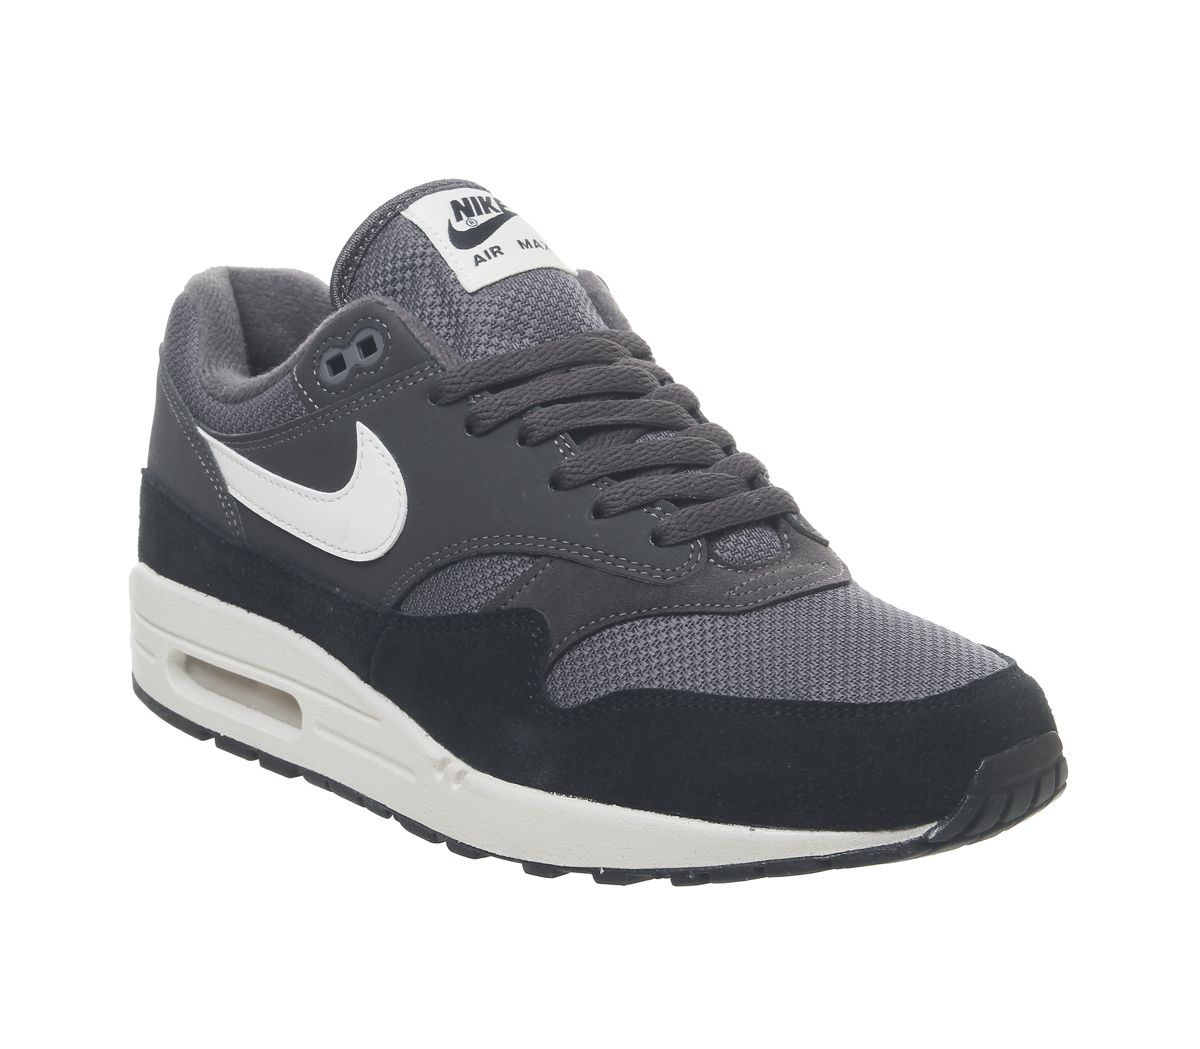 separation shoes 53a8e 1959a Nike Air Max 1 Trainers Thunder Grey Sail Black - His trainers